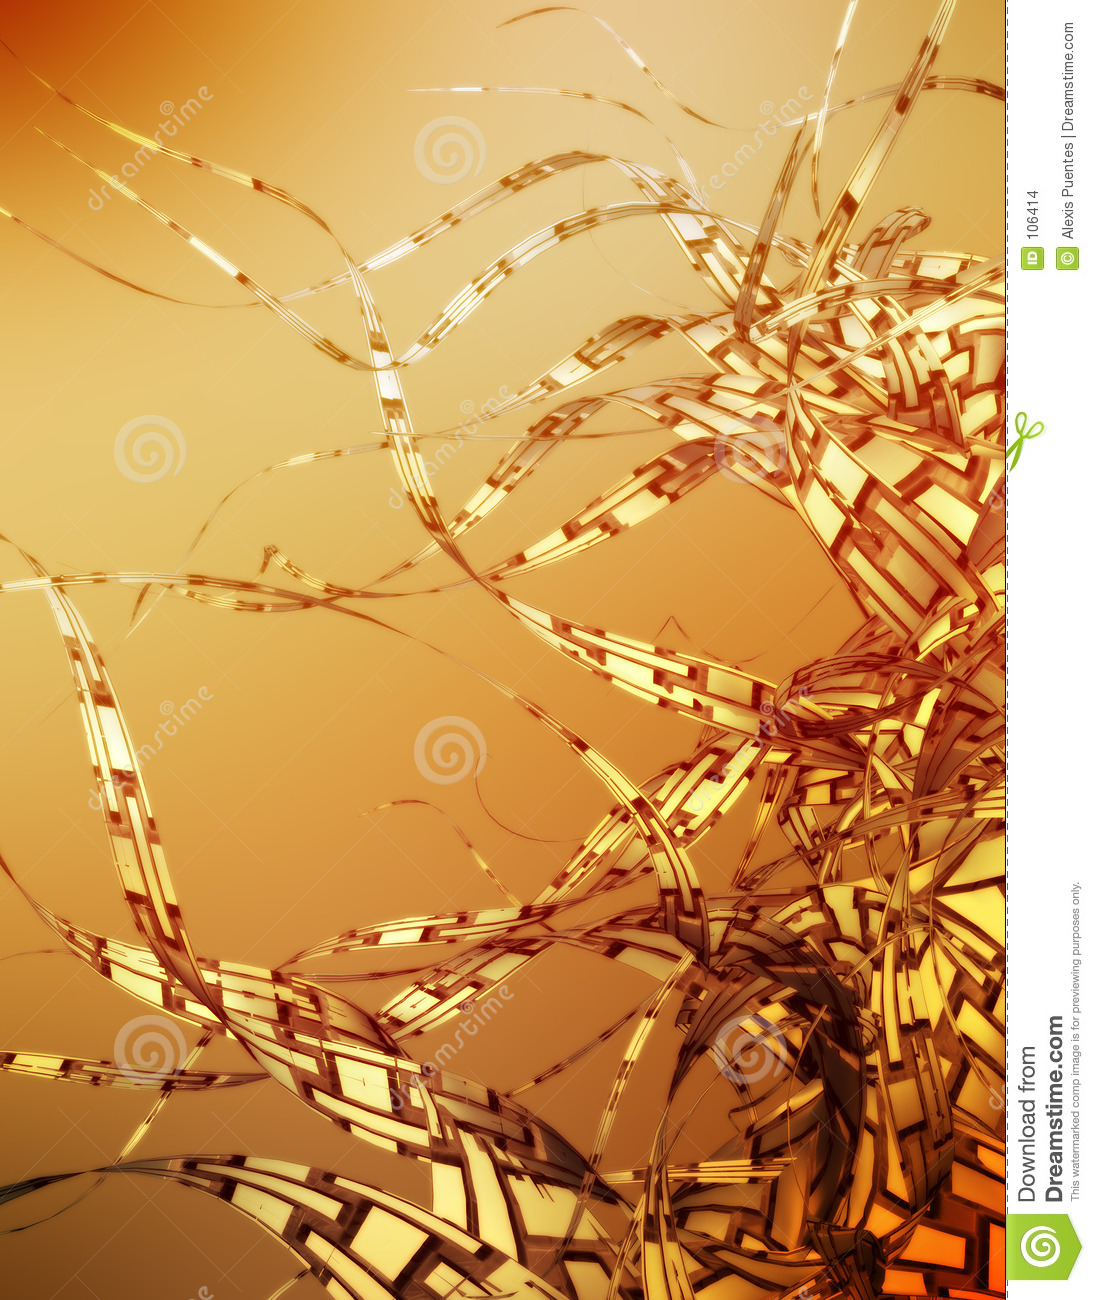 Download Golden dreams stock illustration. Illustration of fusion - 106414